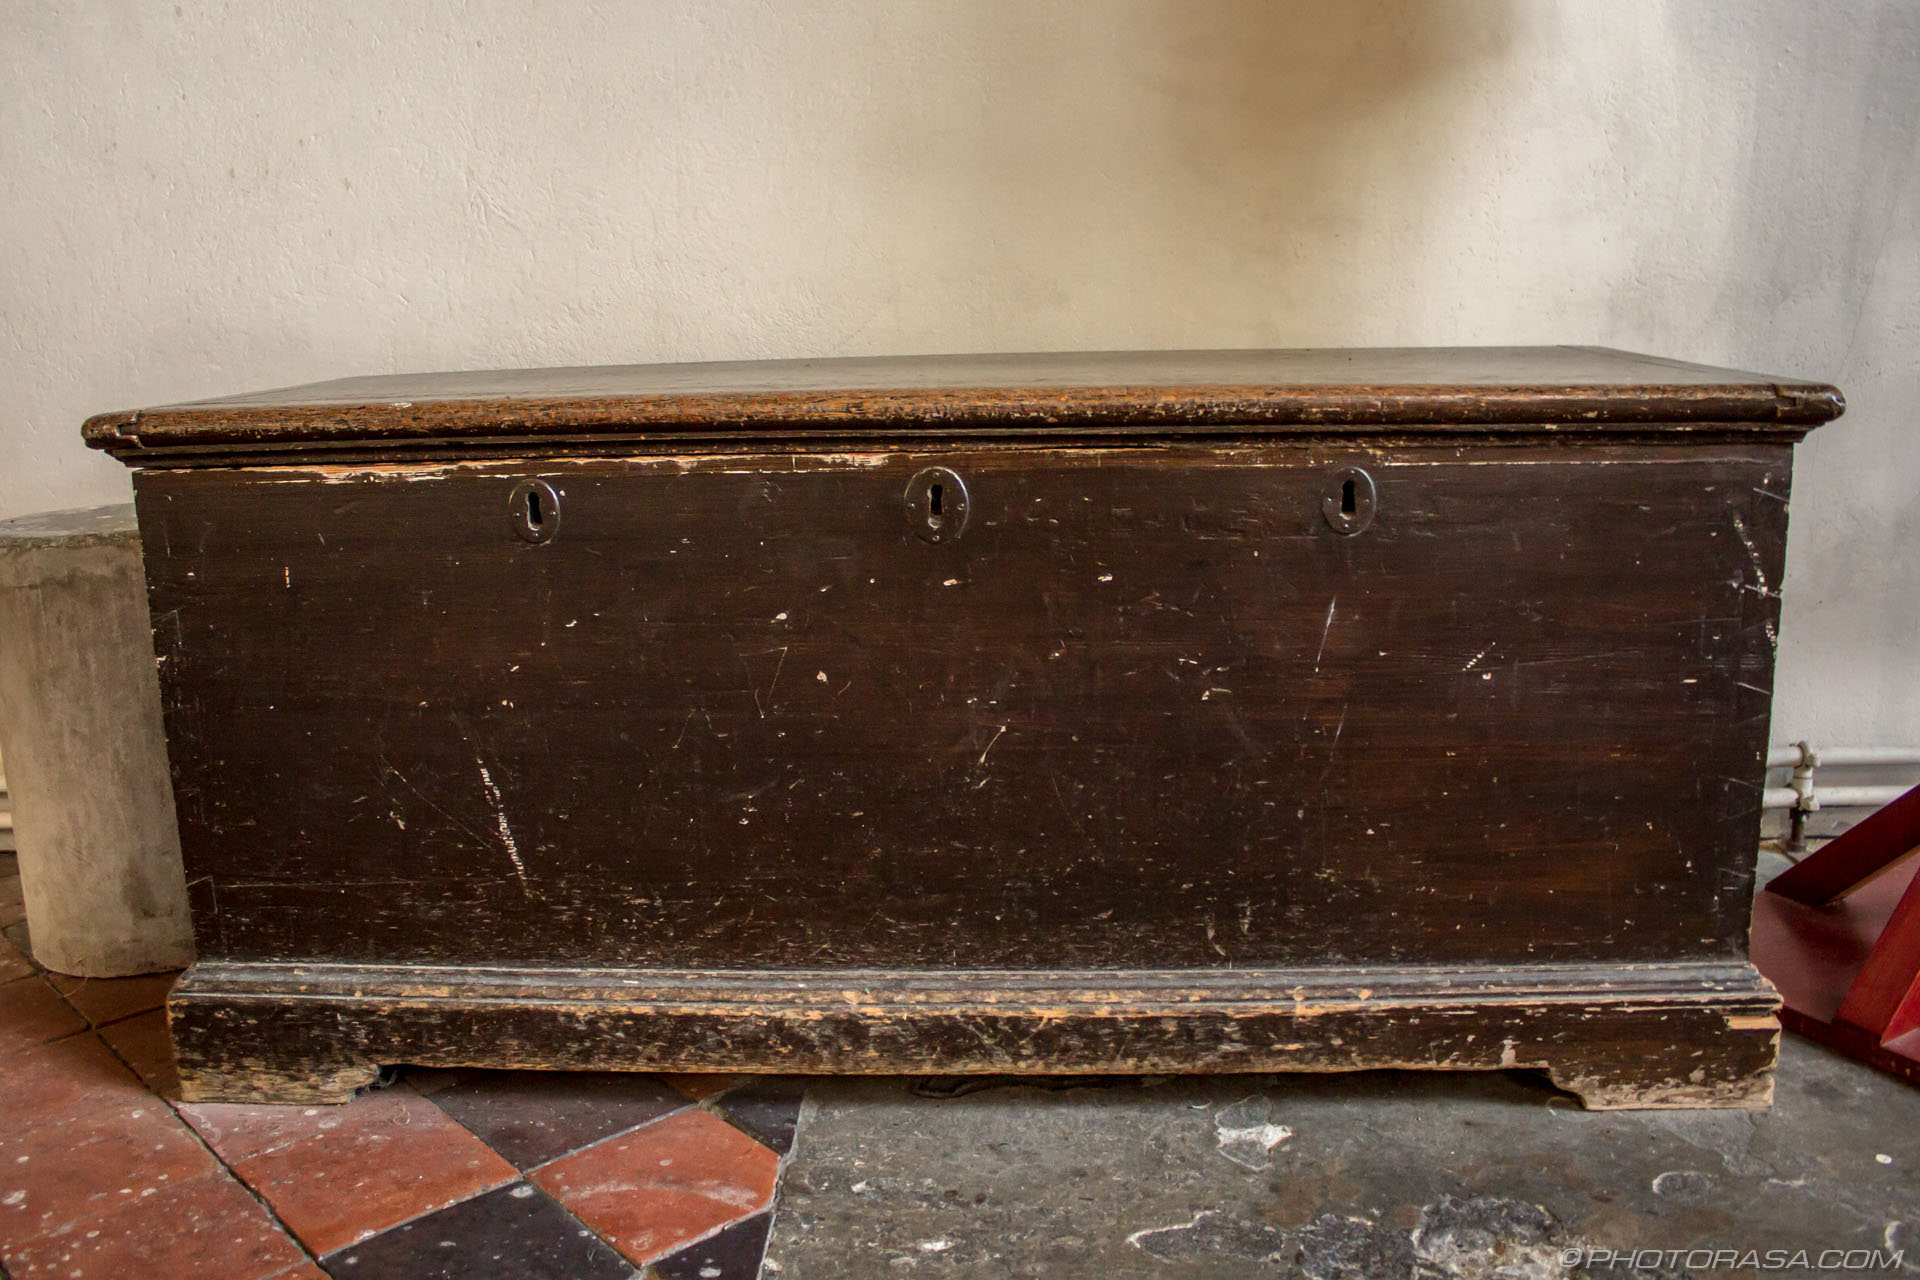 http://photorasa.com/st-marys-church-in-lenham/old-wooden-church-chest-with-3-keyholes/